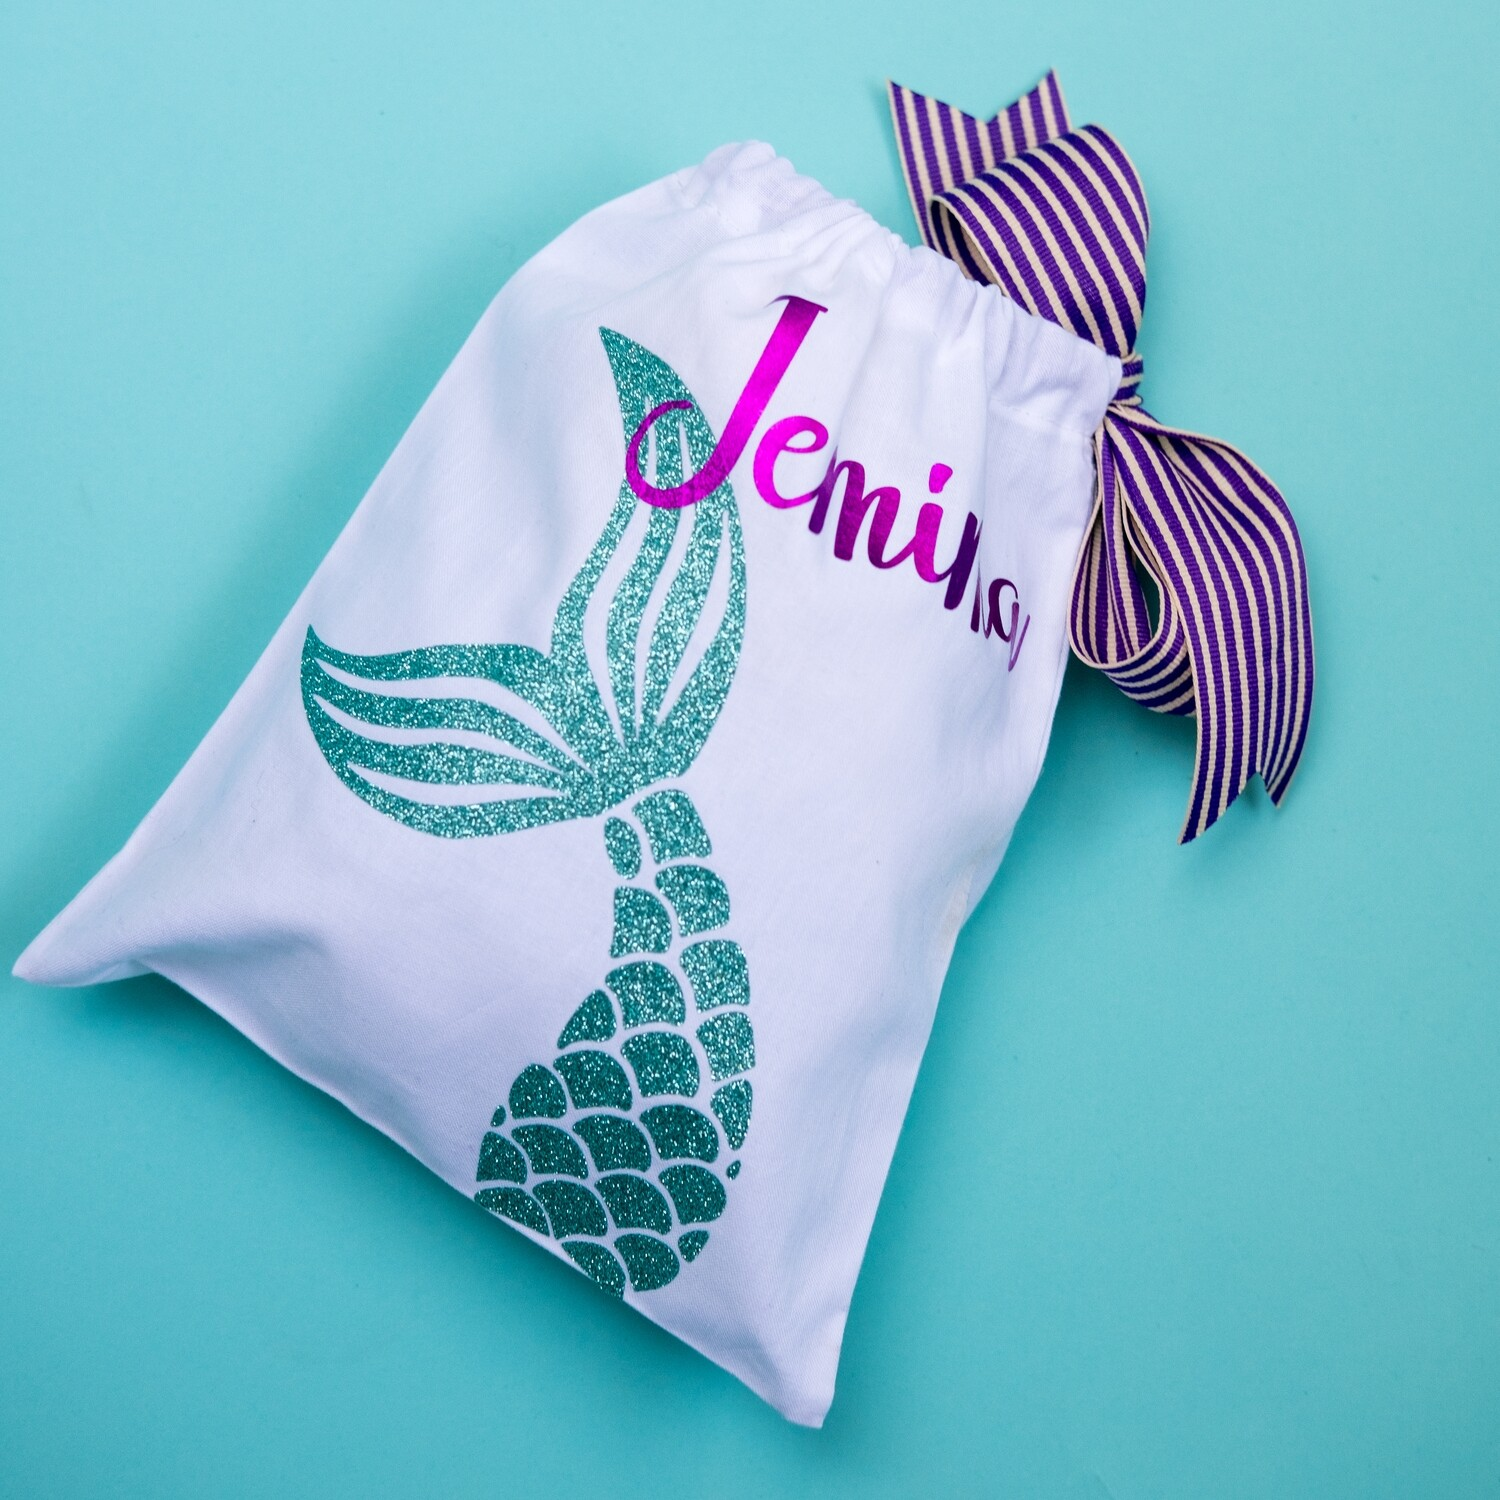 Fabric party bag with mermaid tail on it